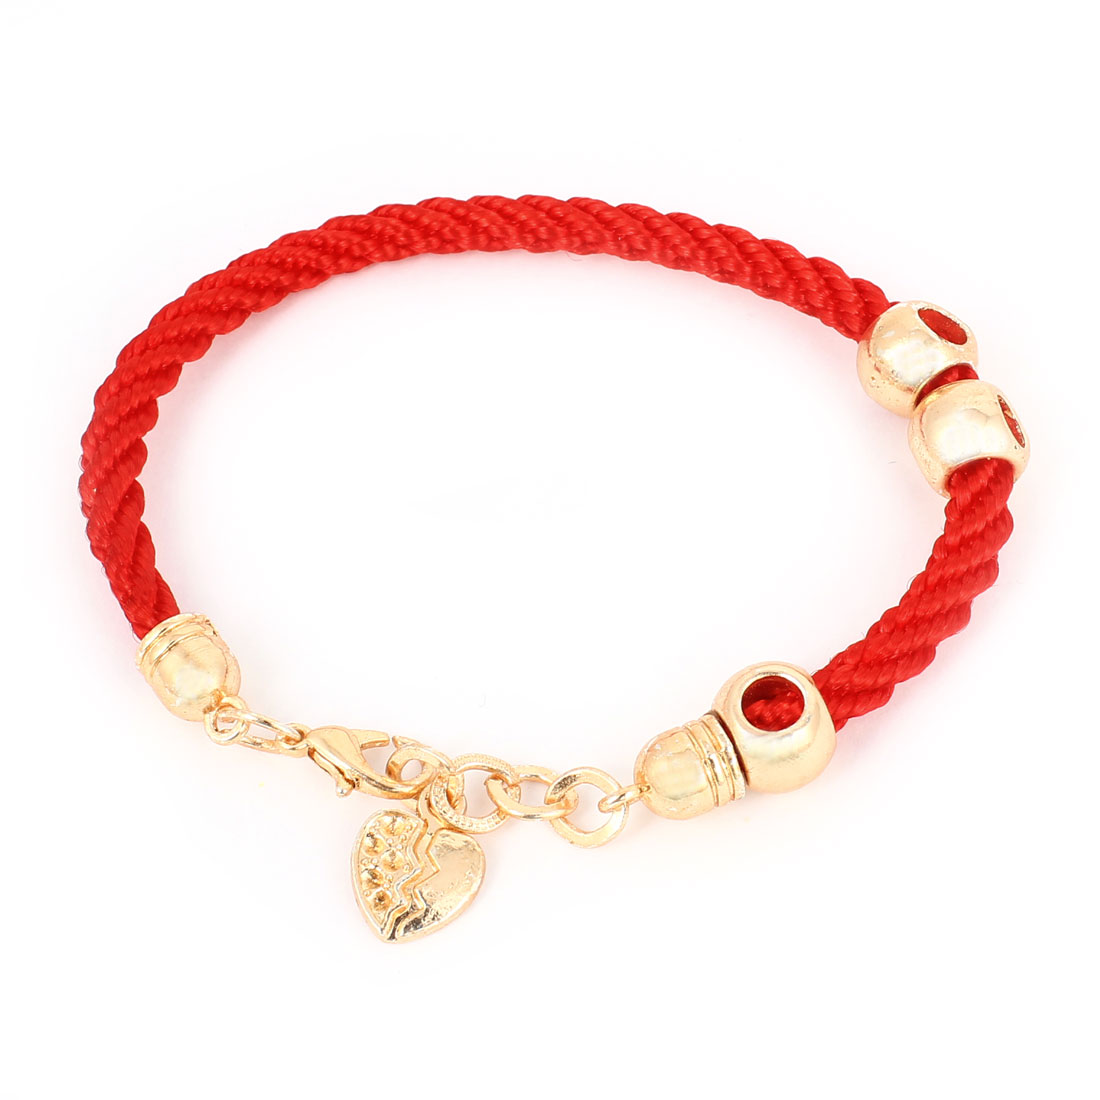 Gold Tone Hollow Out Beads Accent Lobster Clasp Red Twisted String Bracelet